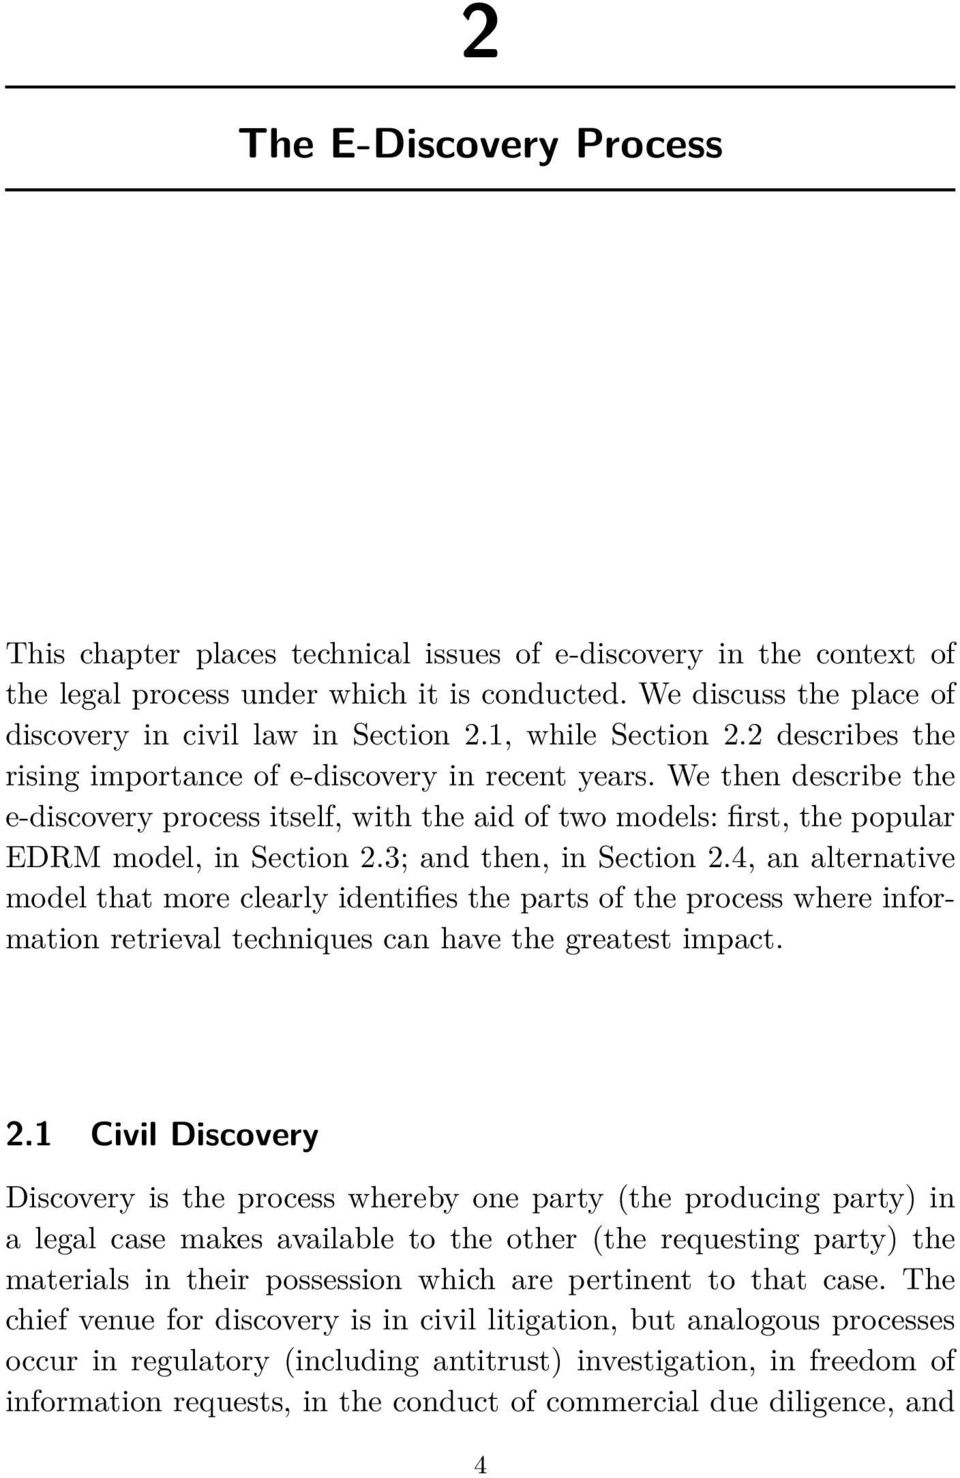 We then describe the e-discovery process itself, with the aid of two models: first, the popular EDRM model, in Section 2.3; and then, in Section 2.